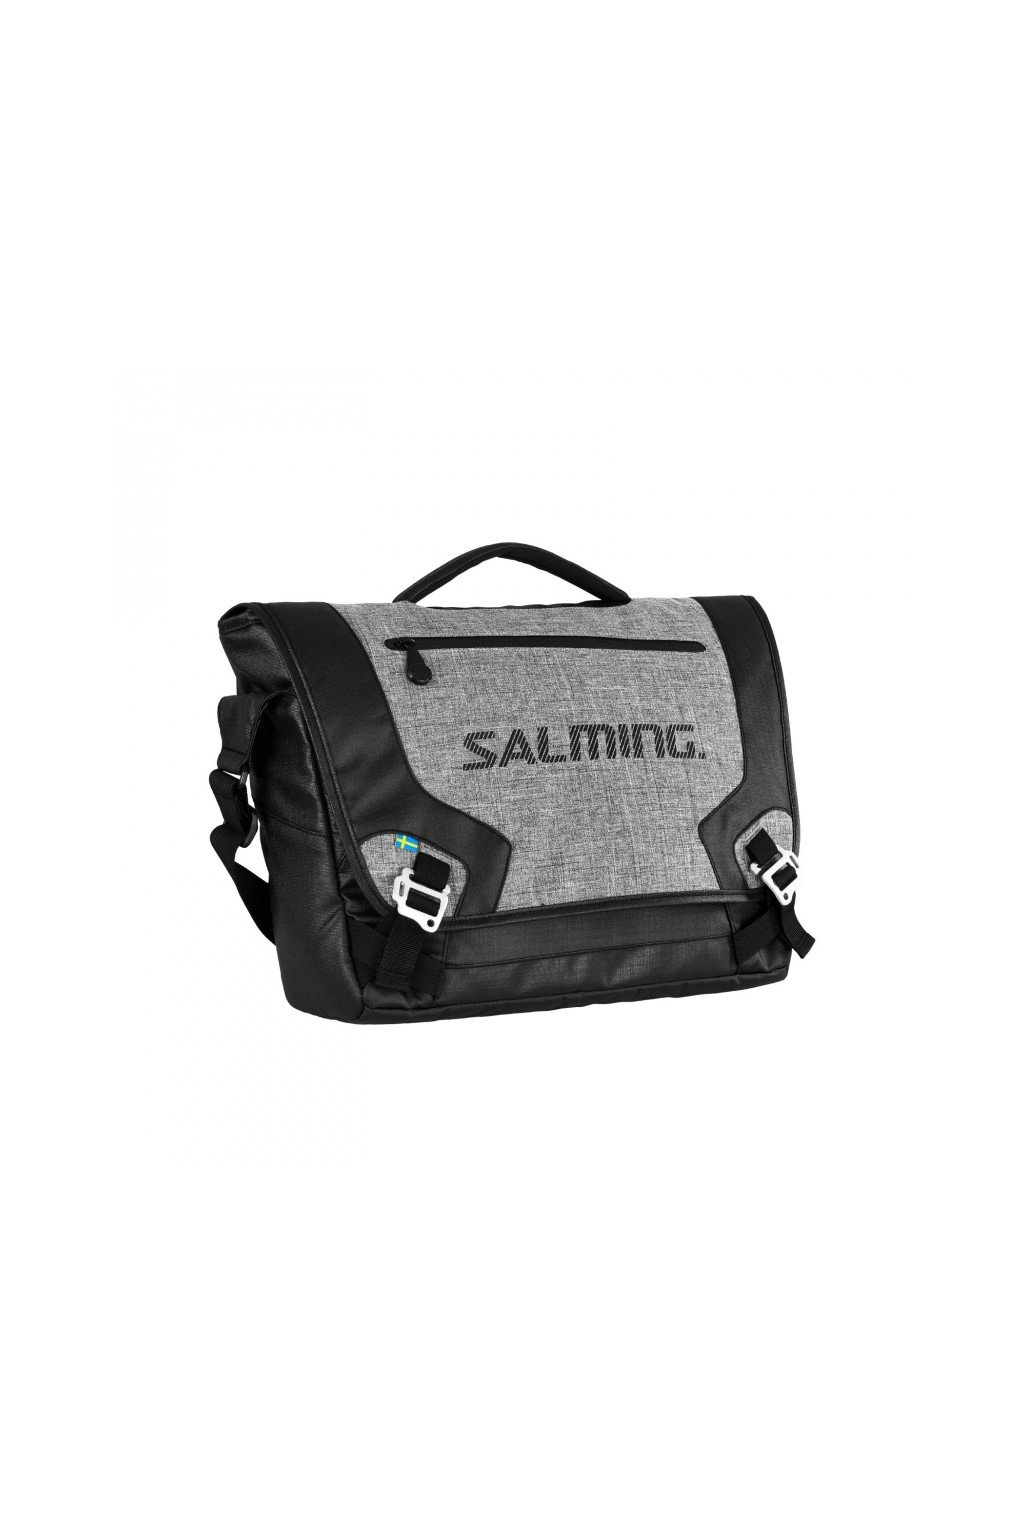 salming broome messenger black grey